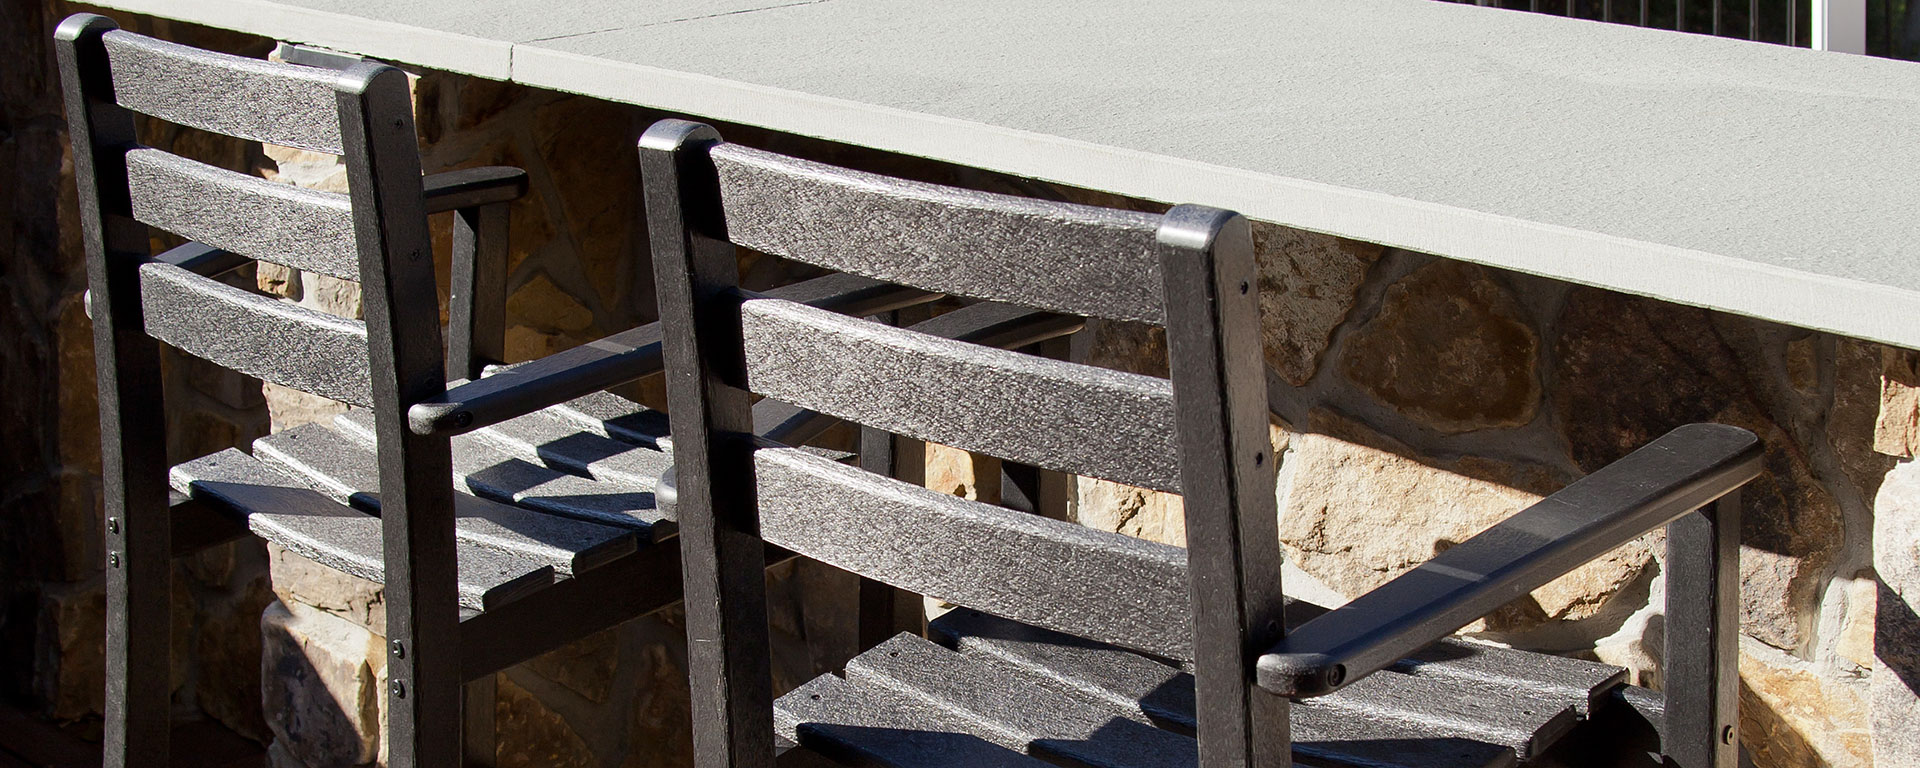 Get The Height Right: Dining Vs. Counter Vs. Bar Height Stools U0026 Chairs For  Your Outdoor Living Space